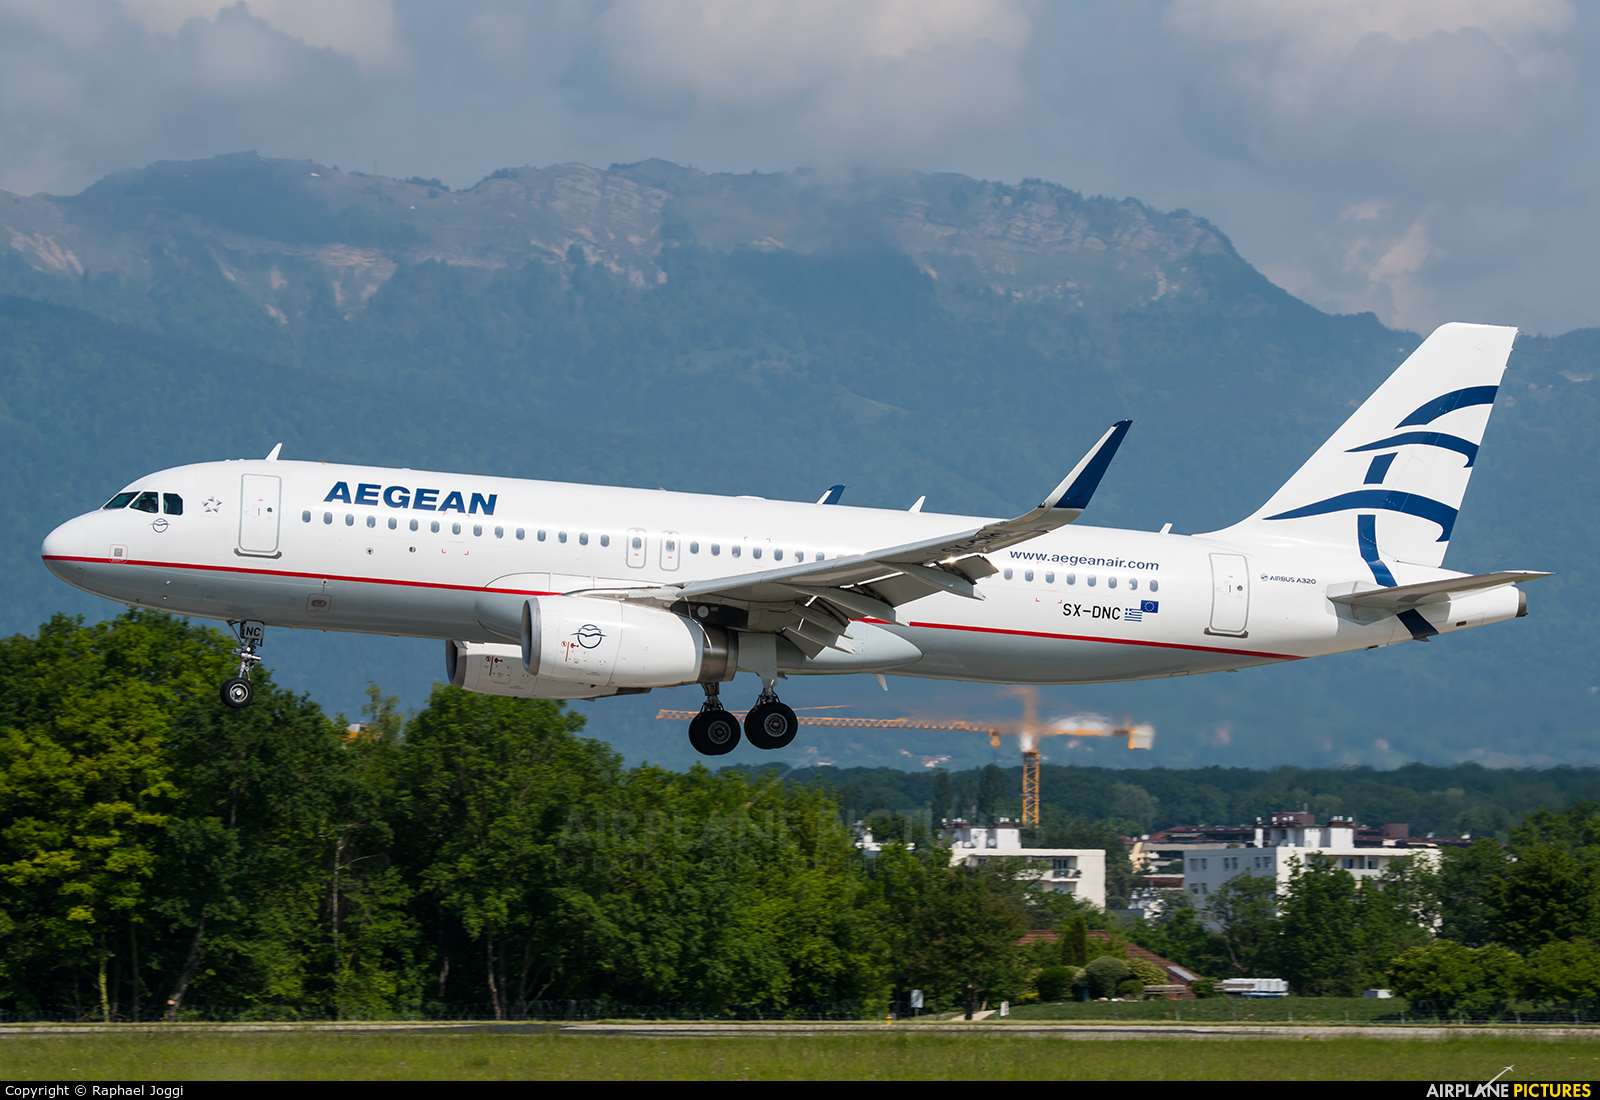 Aegean Airlines SX-DNC aircraft at Geneva Intl